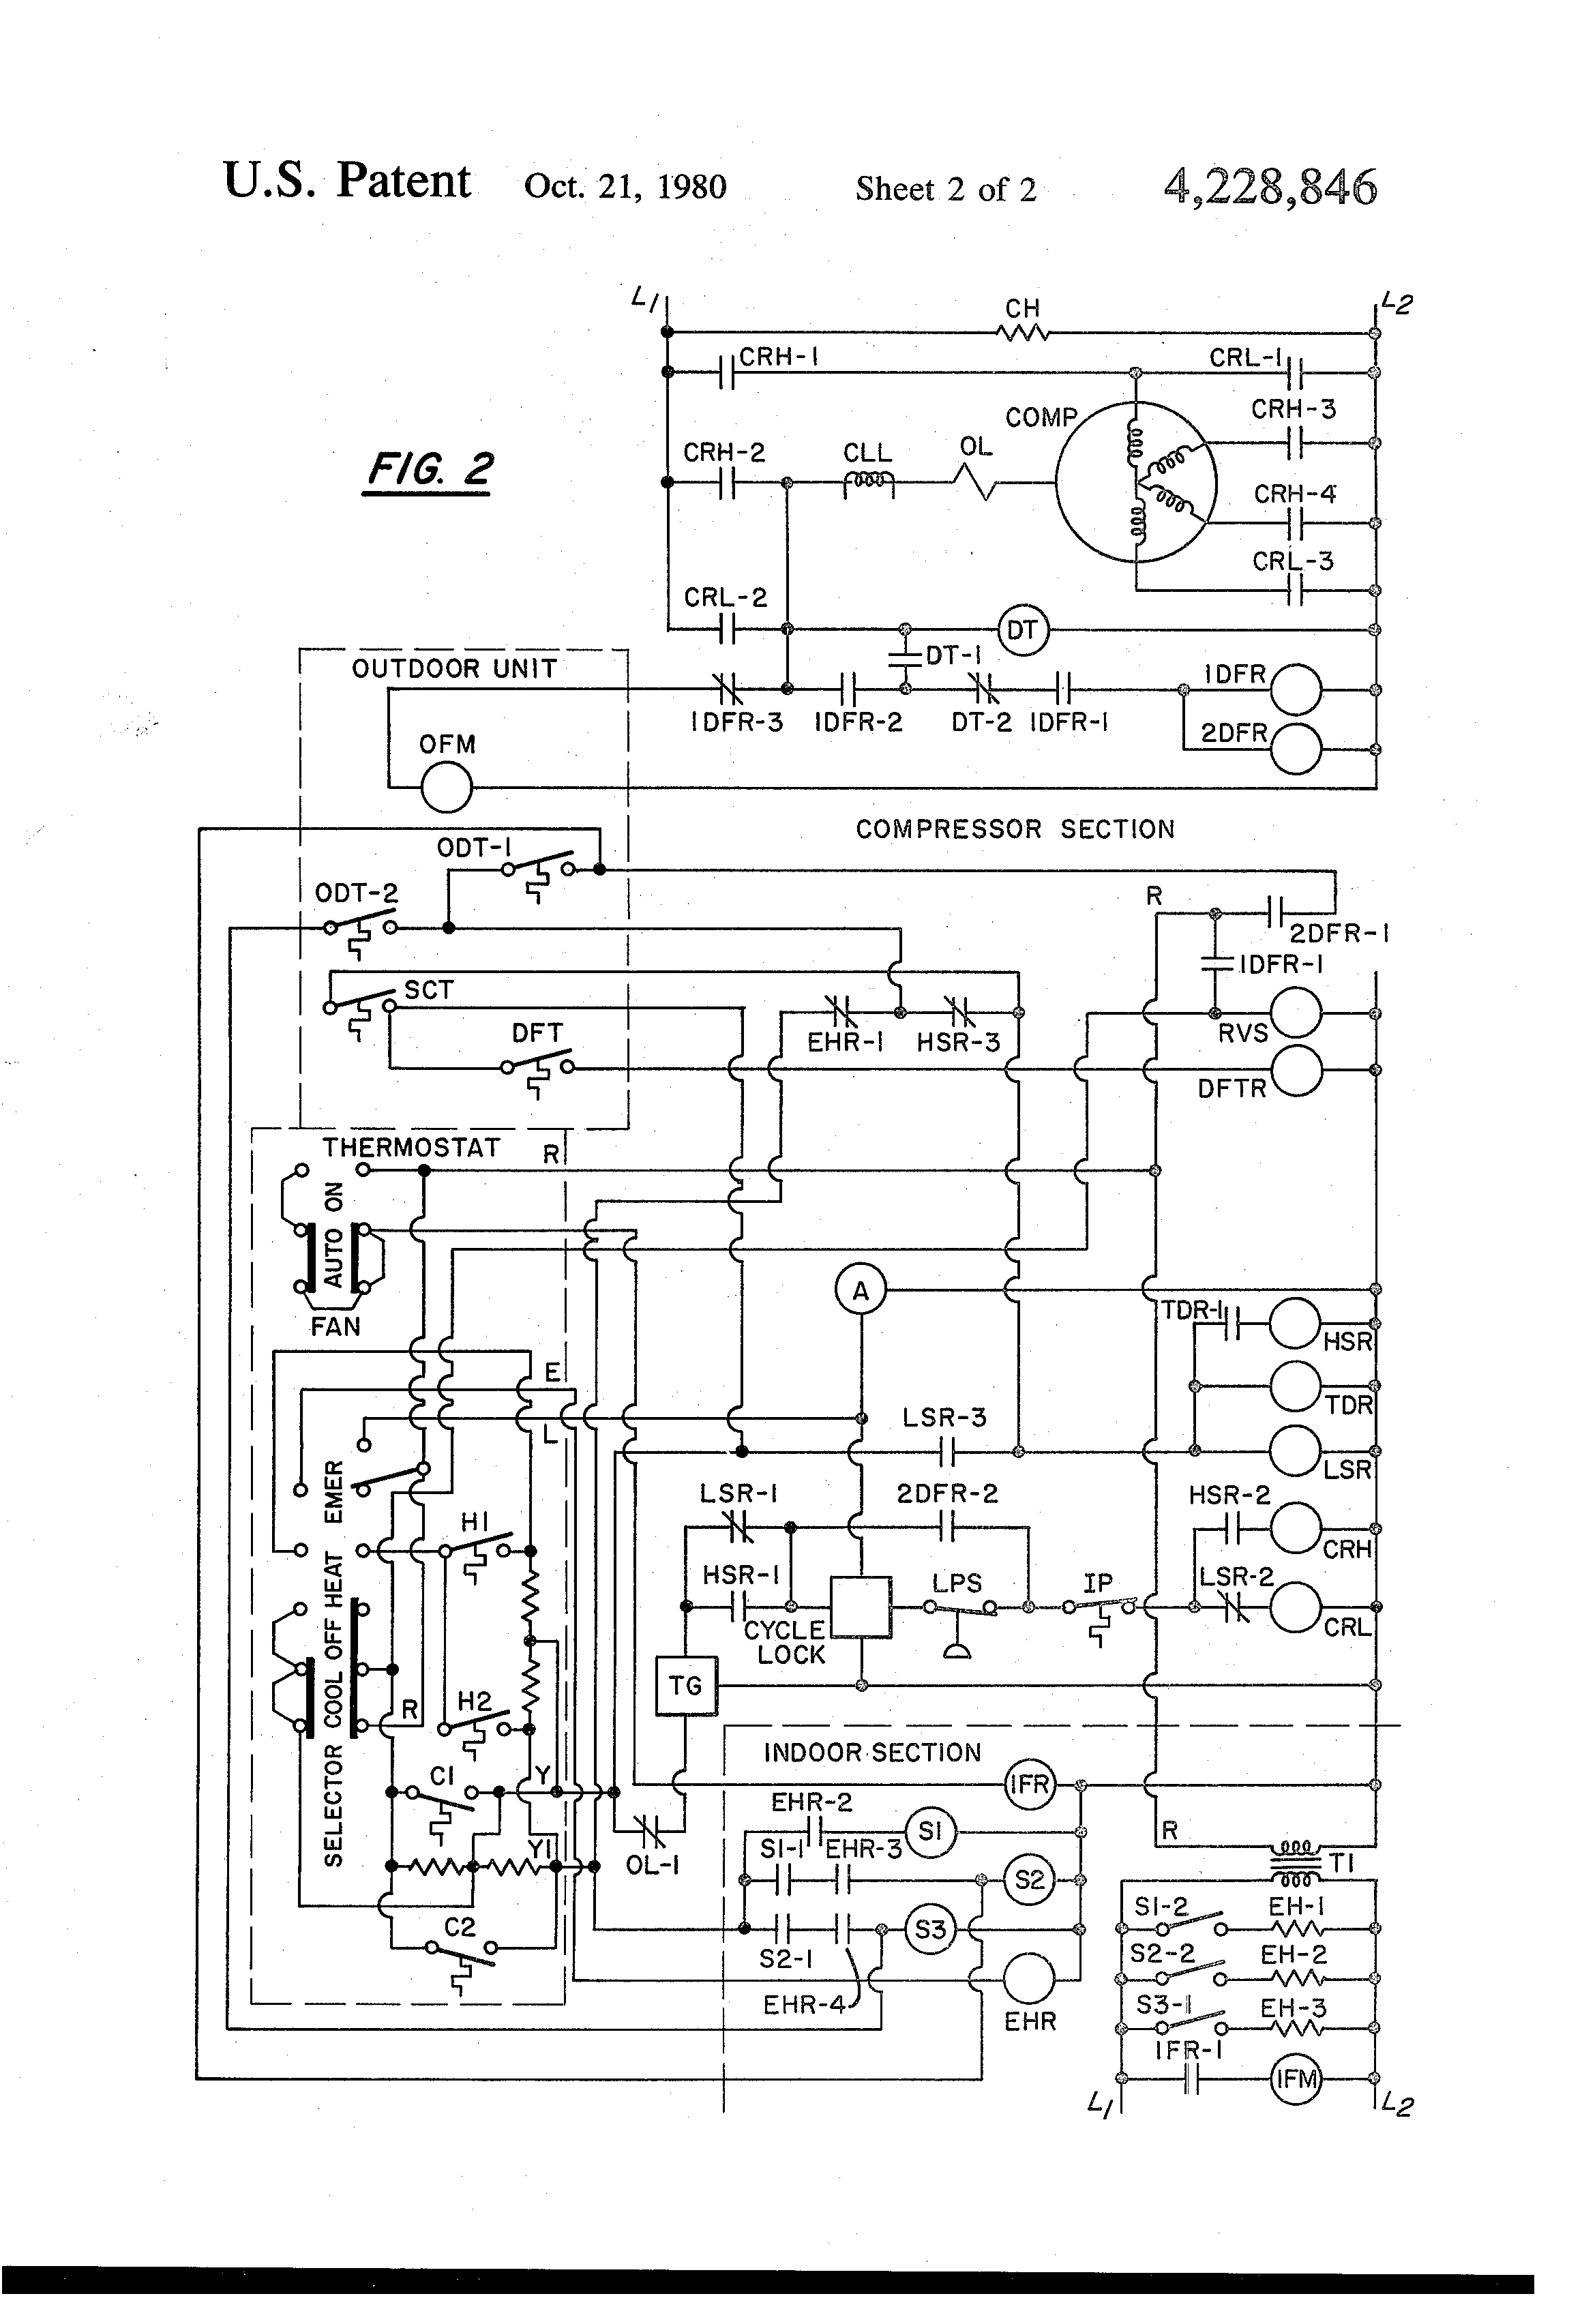 england s pellet heater wiring schematic dayton electric unit heater wiring diagram - wiring diagram sterling heater wiring schematic #11